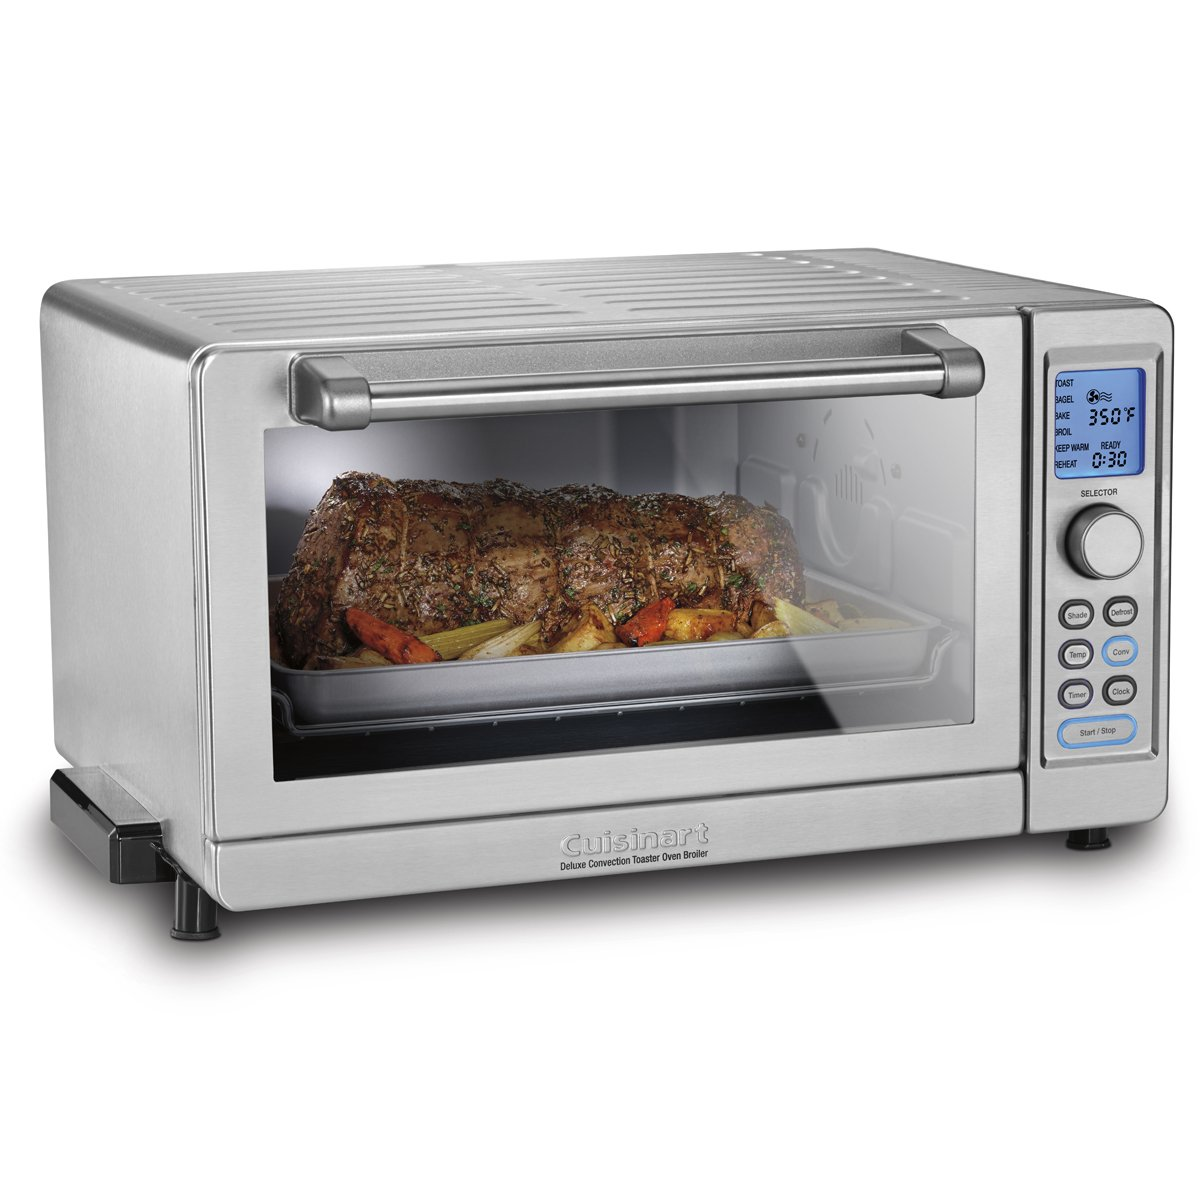 Cuisinart TOB-135NC Deluxe Convection Toaster Oven Broiler, Silver